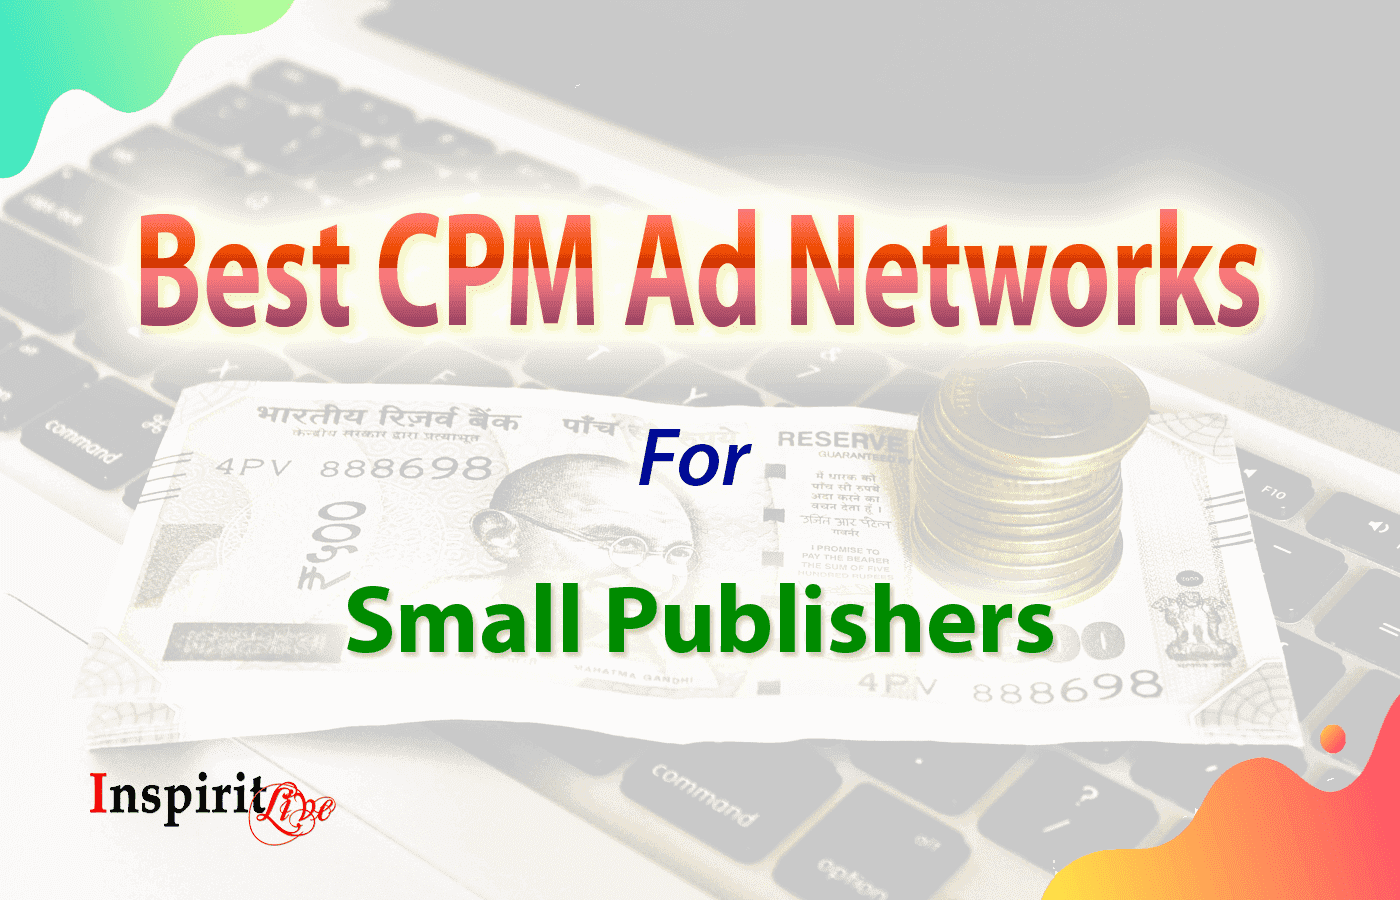 Best CPM Ad Networks For Small Publishers